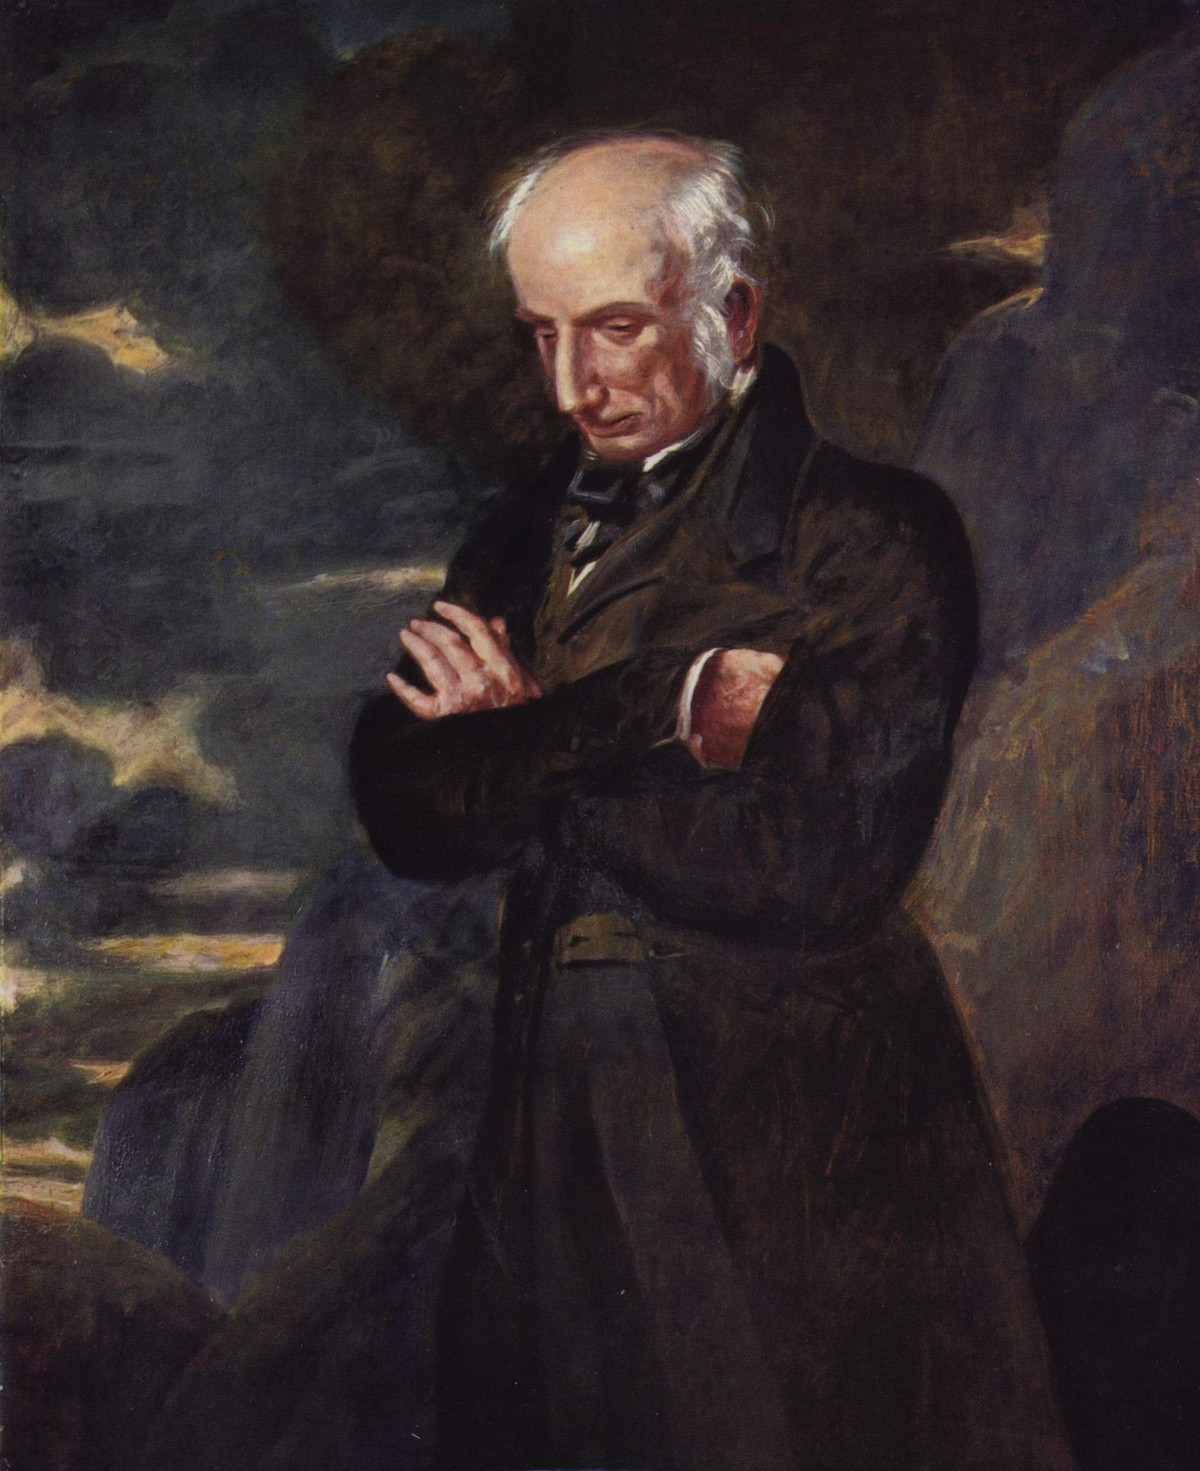 Portrait of William Wordsworth by Benjamin Robert, 1841